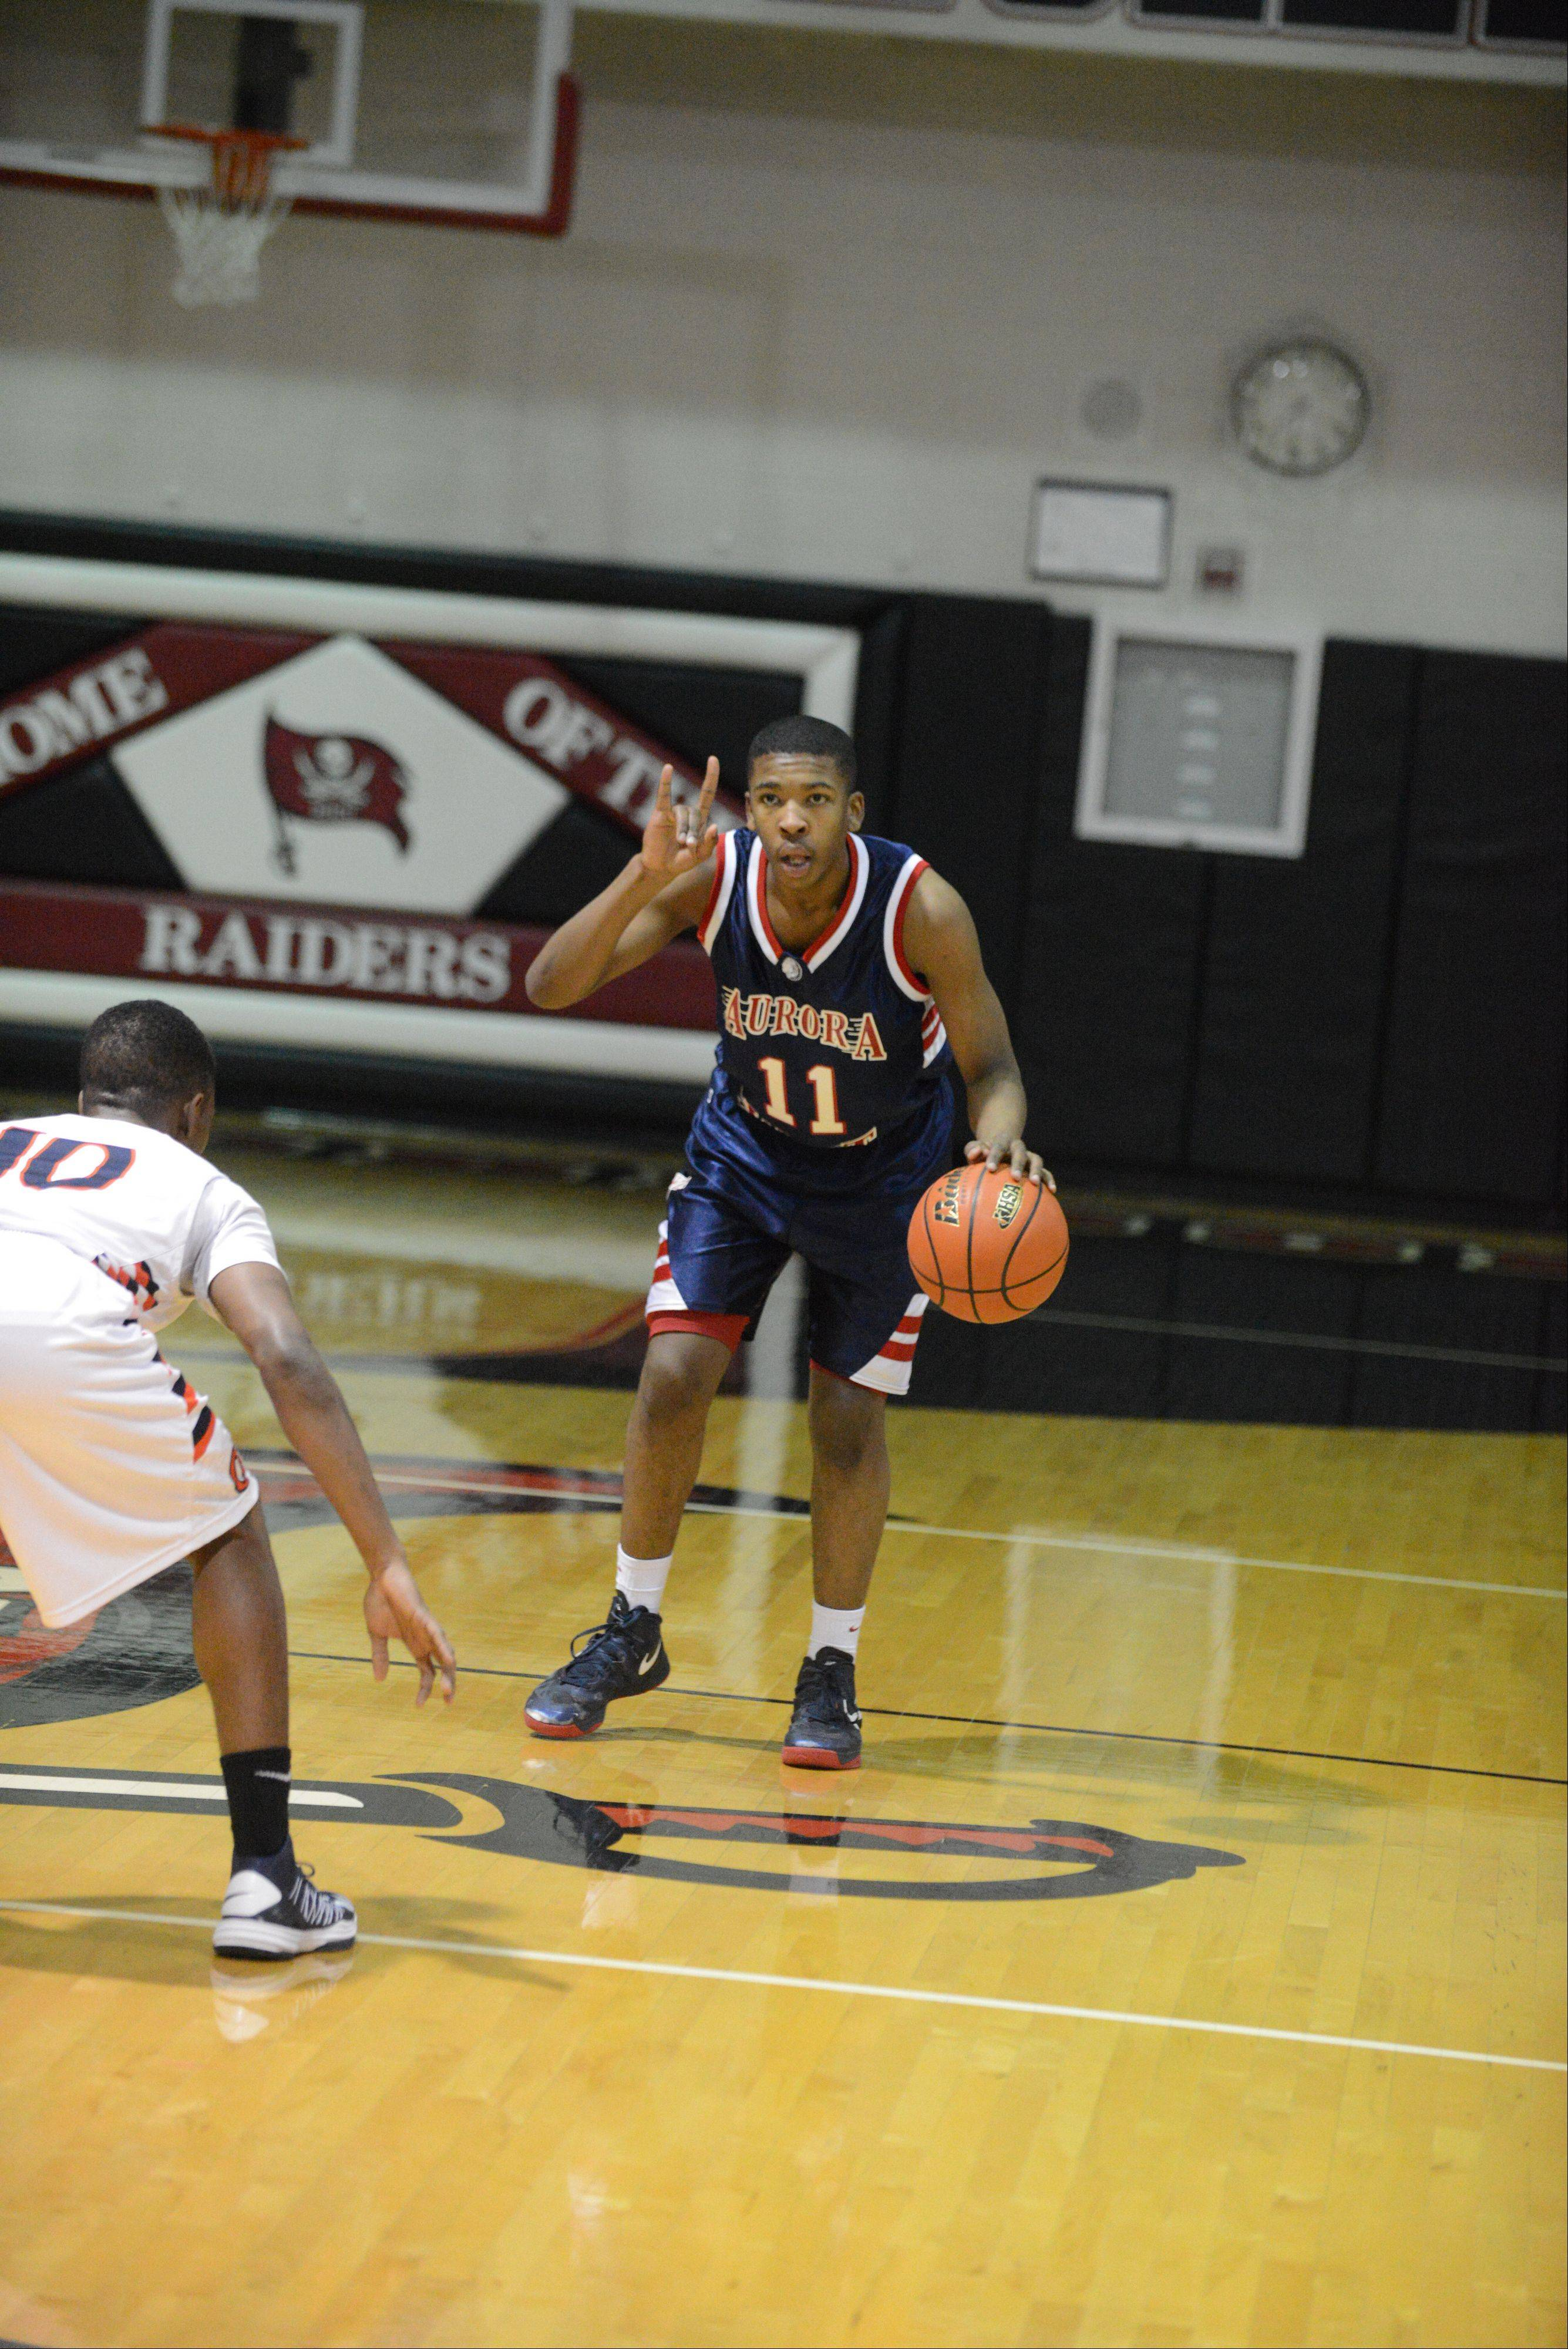 West Aurora played Oswego Wednesday night for boys basketball sectional semifinals.